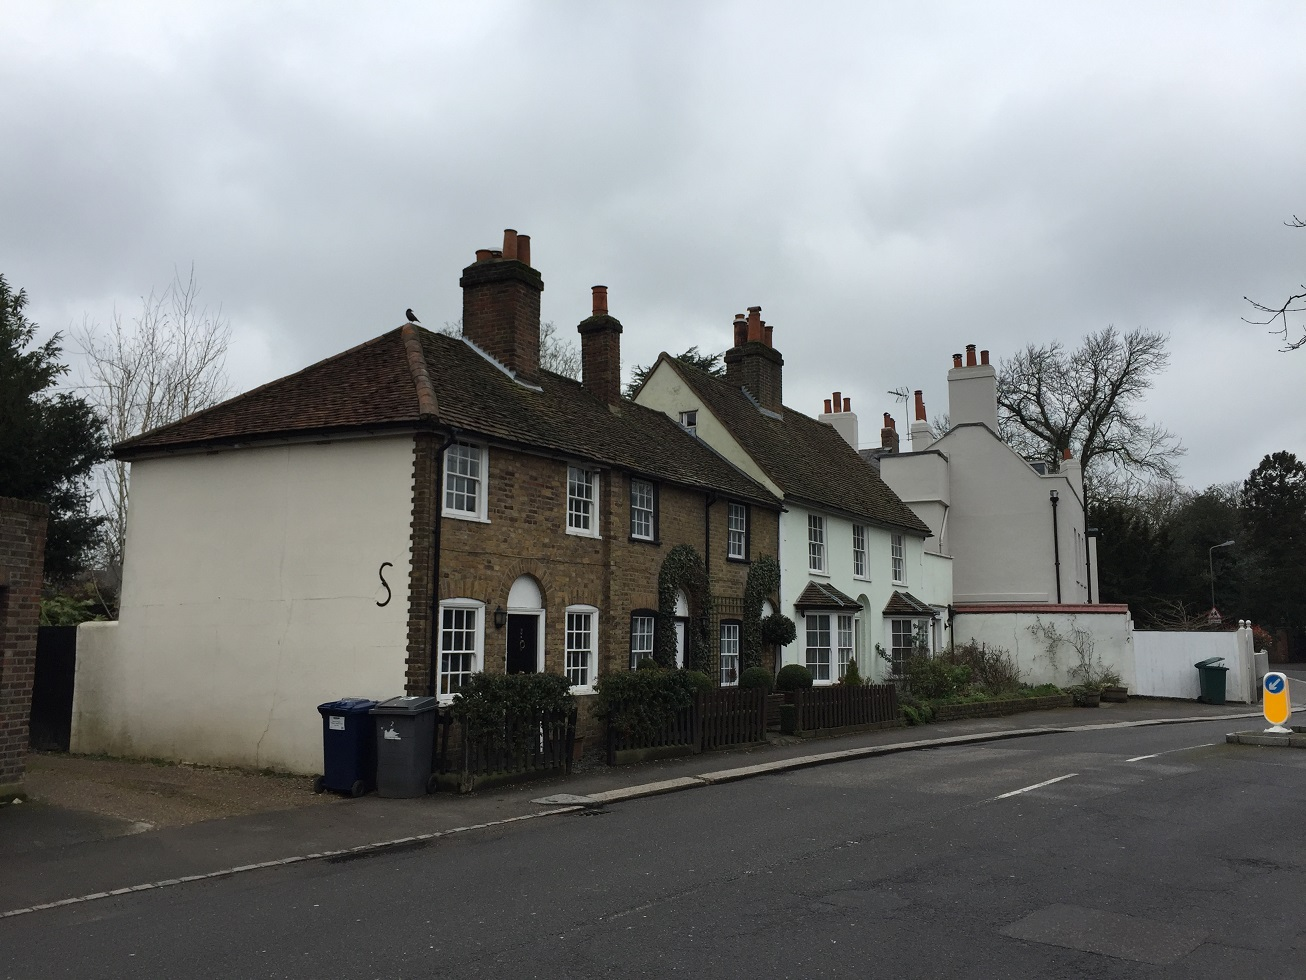 Houses on Hadley Common, EN5